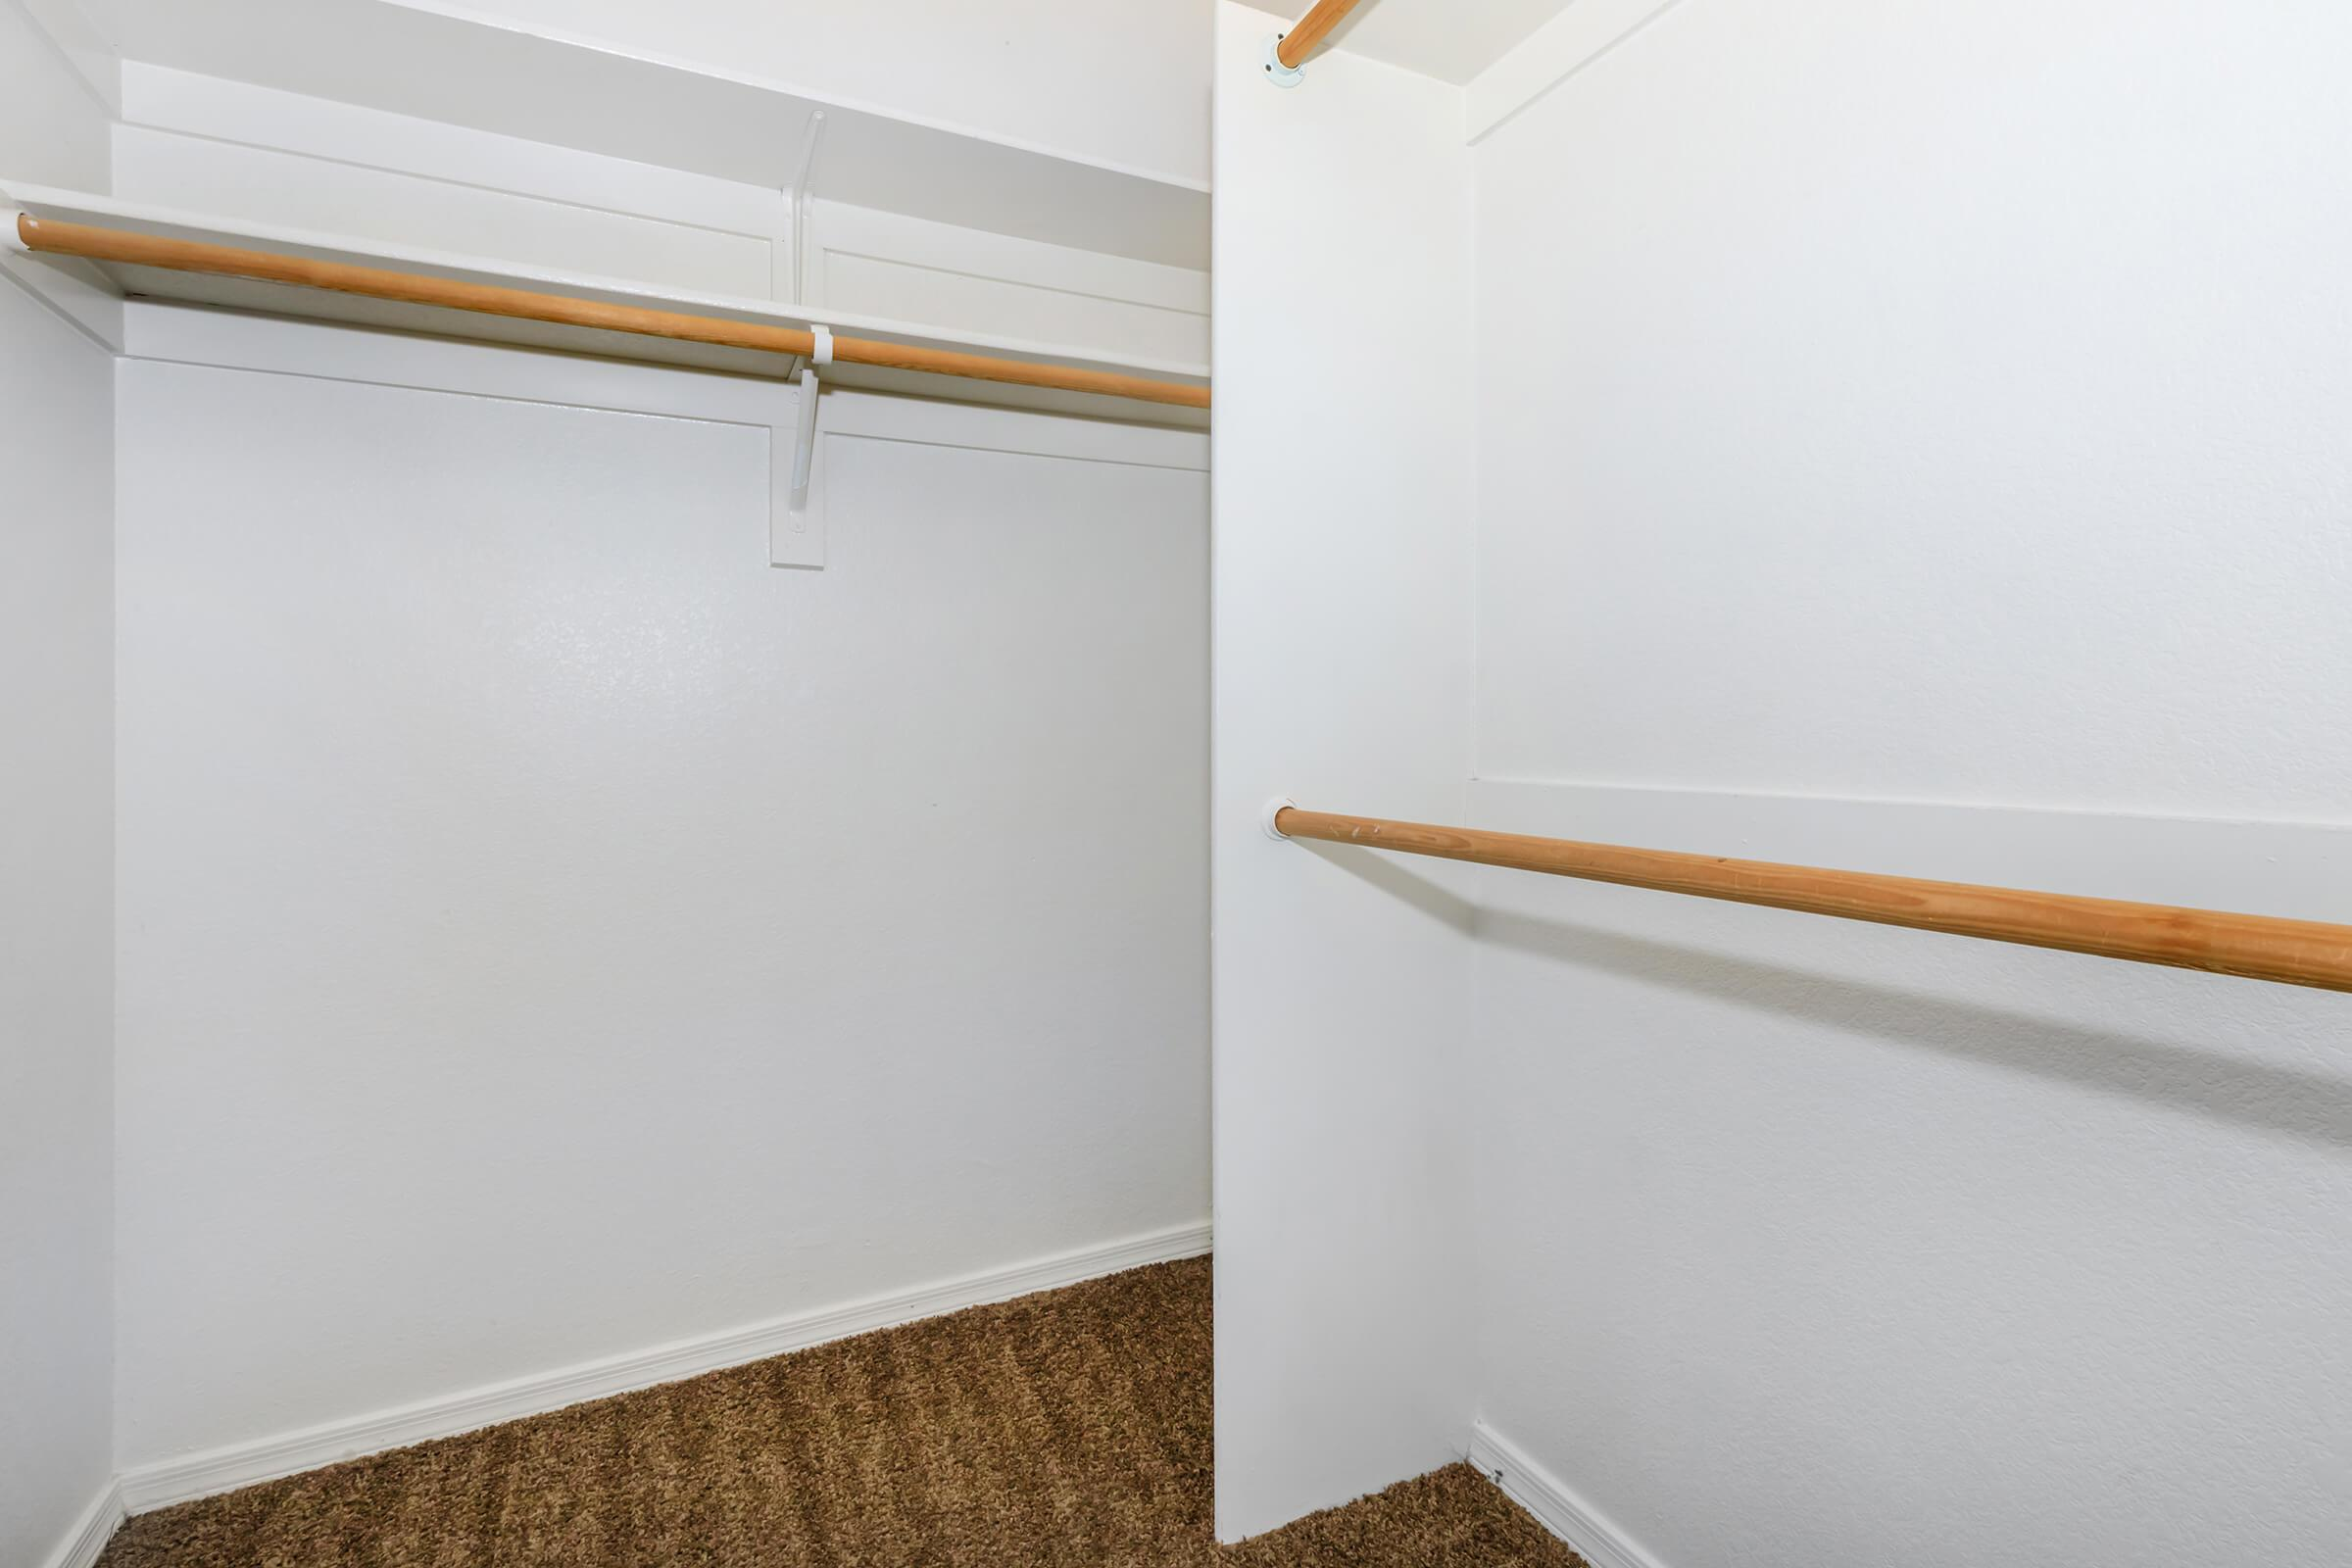 SPACIOUS CLOSETS IN TWO BEDROOM APARTMENT